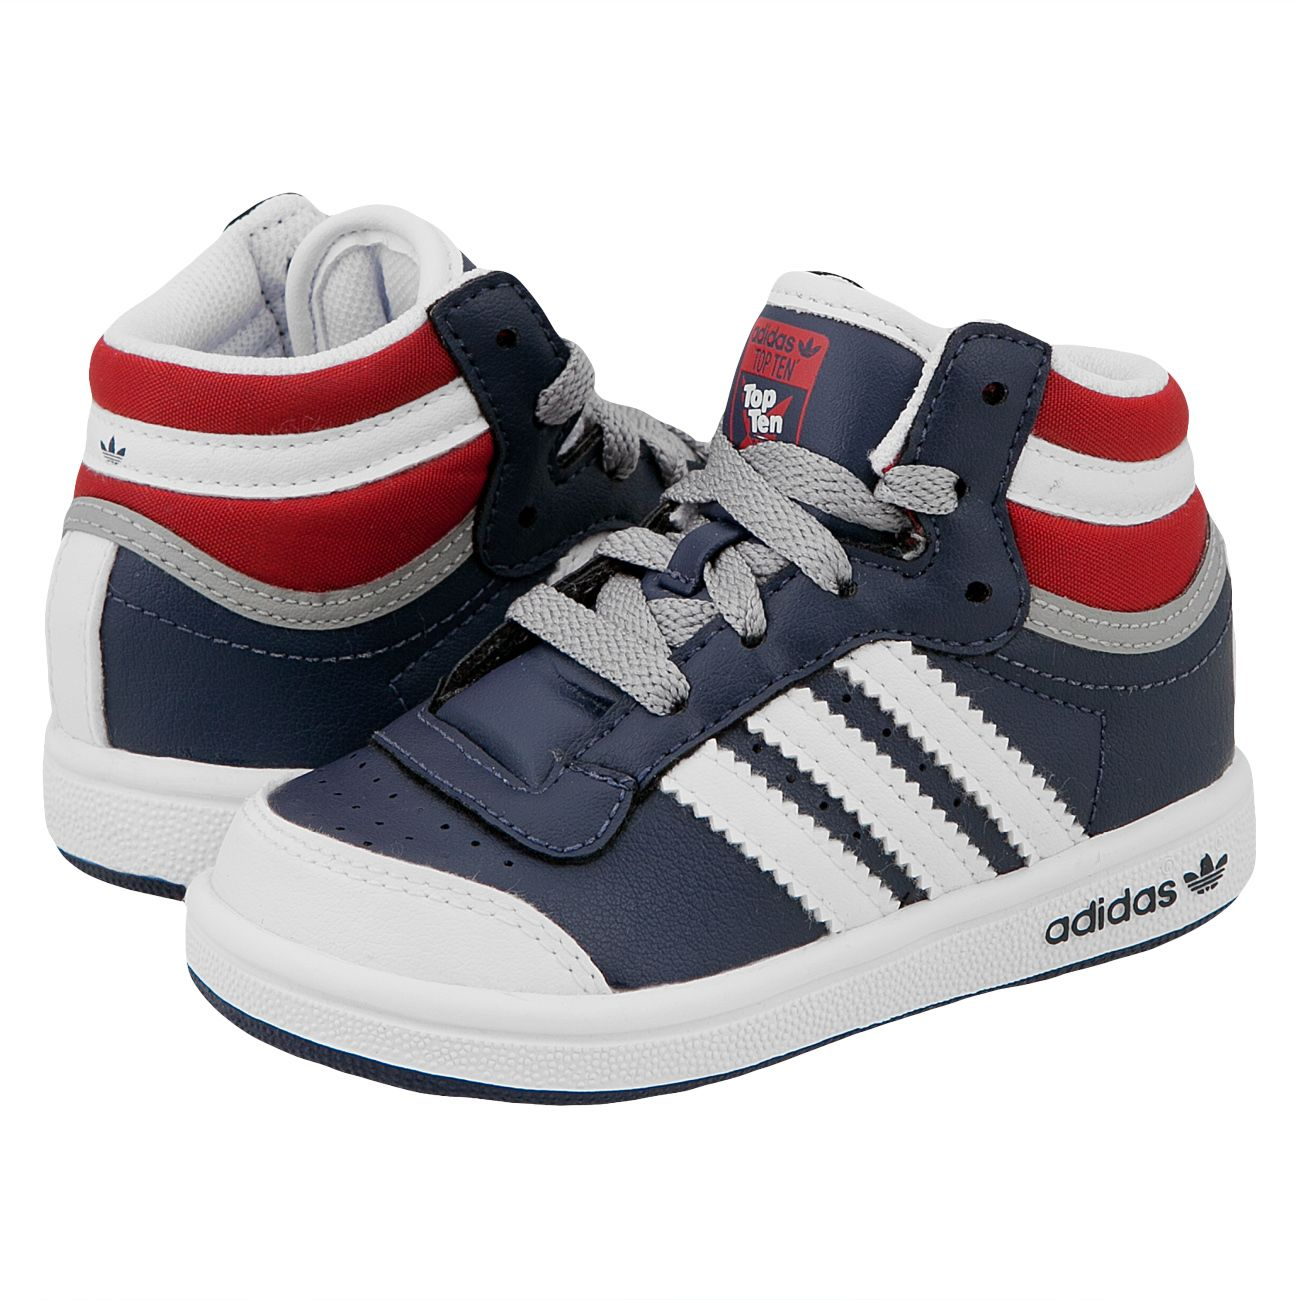 Adidas Top Ten Hi I Kids Sneakers NavyColRedWhite | Air